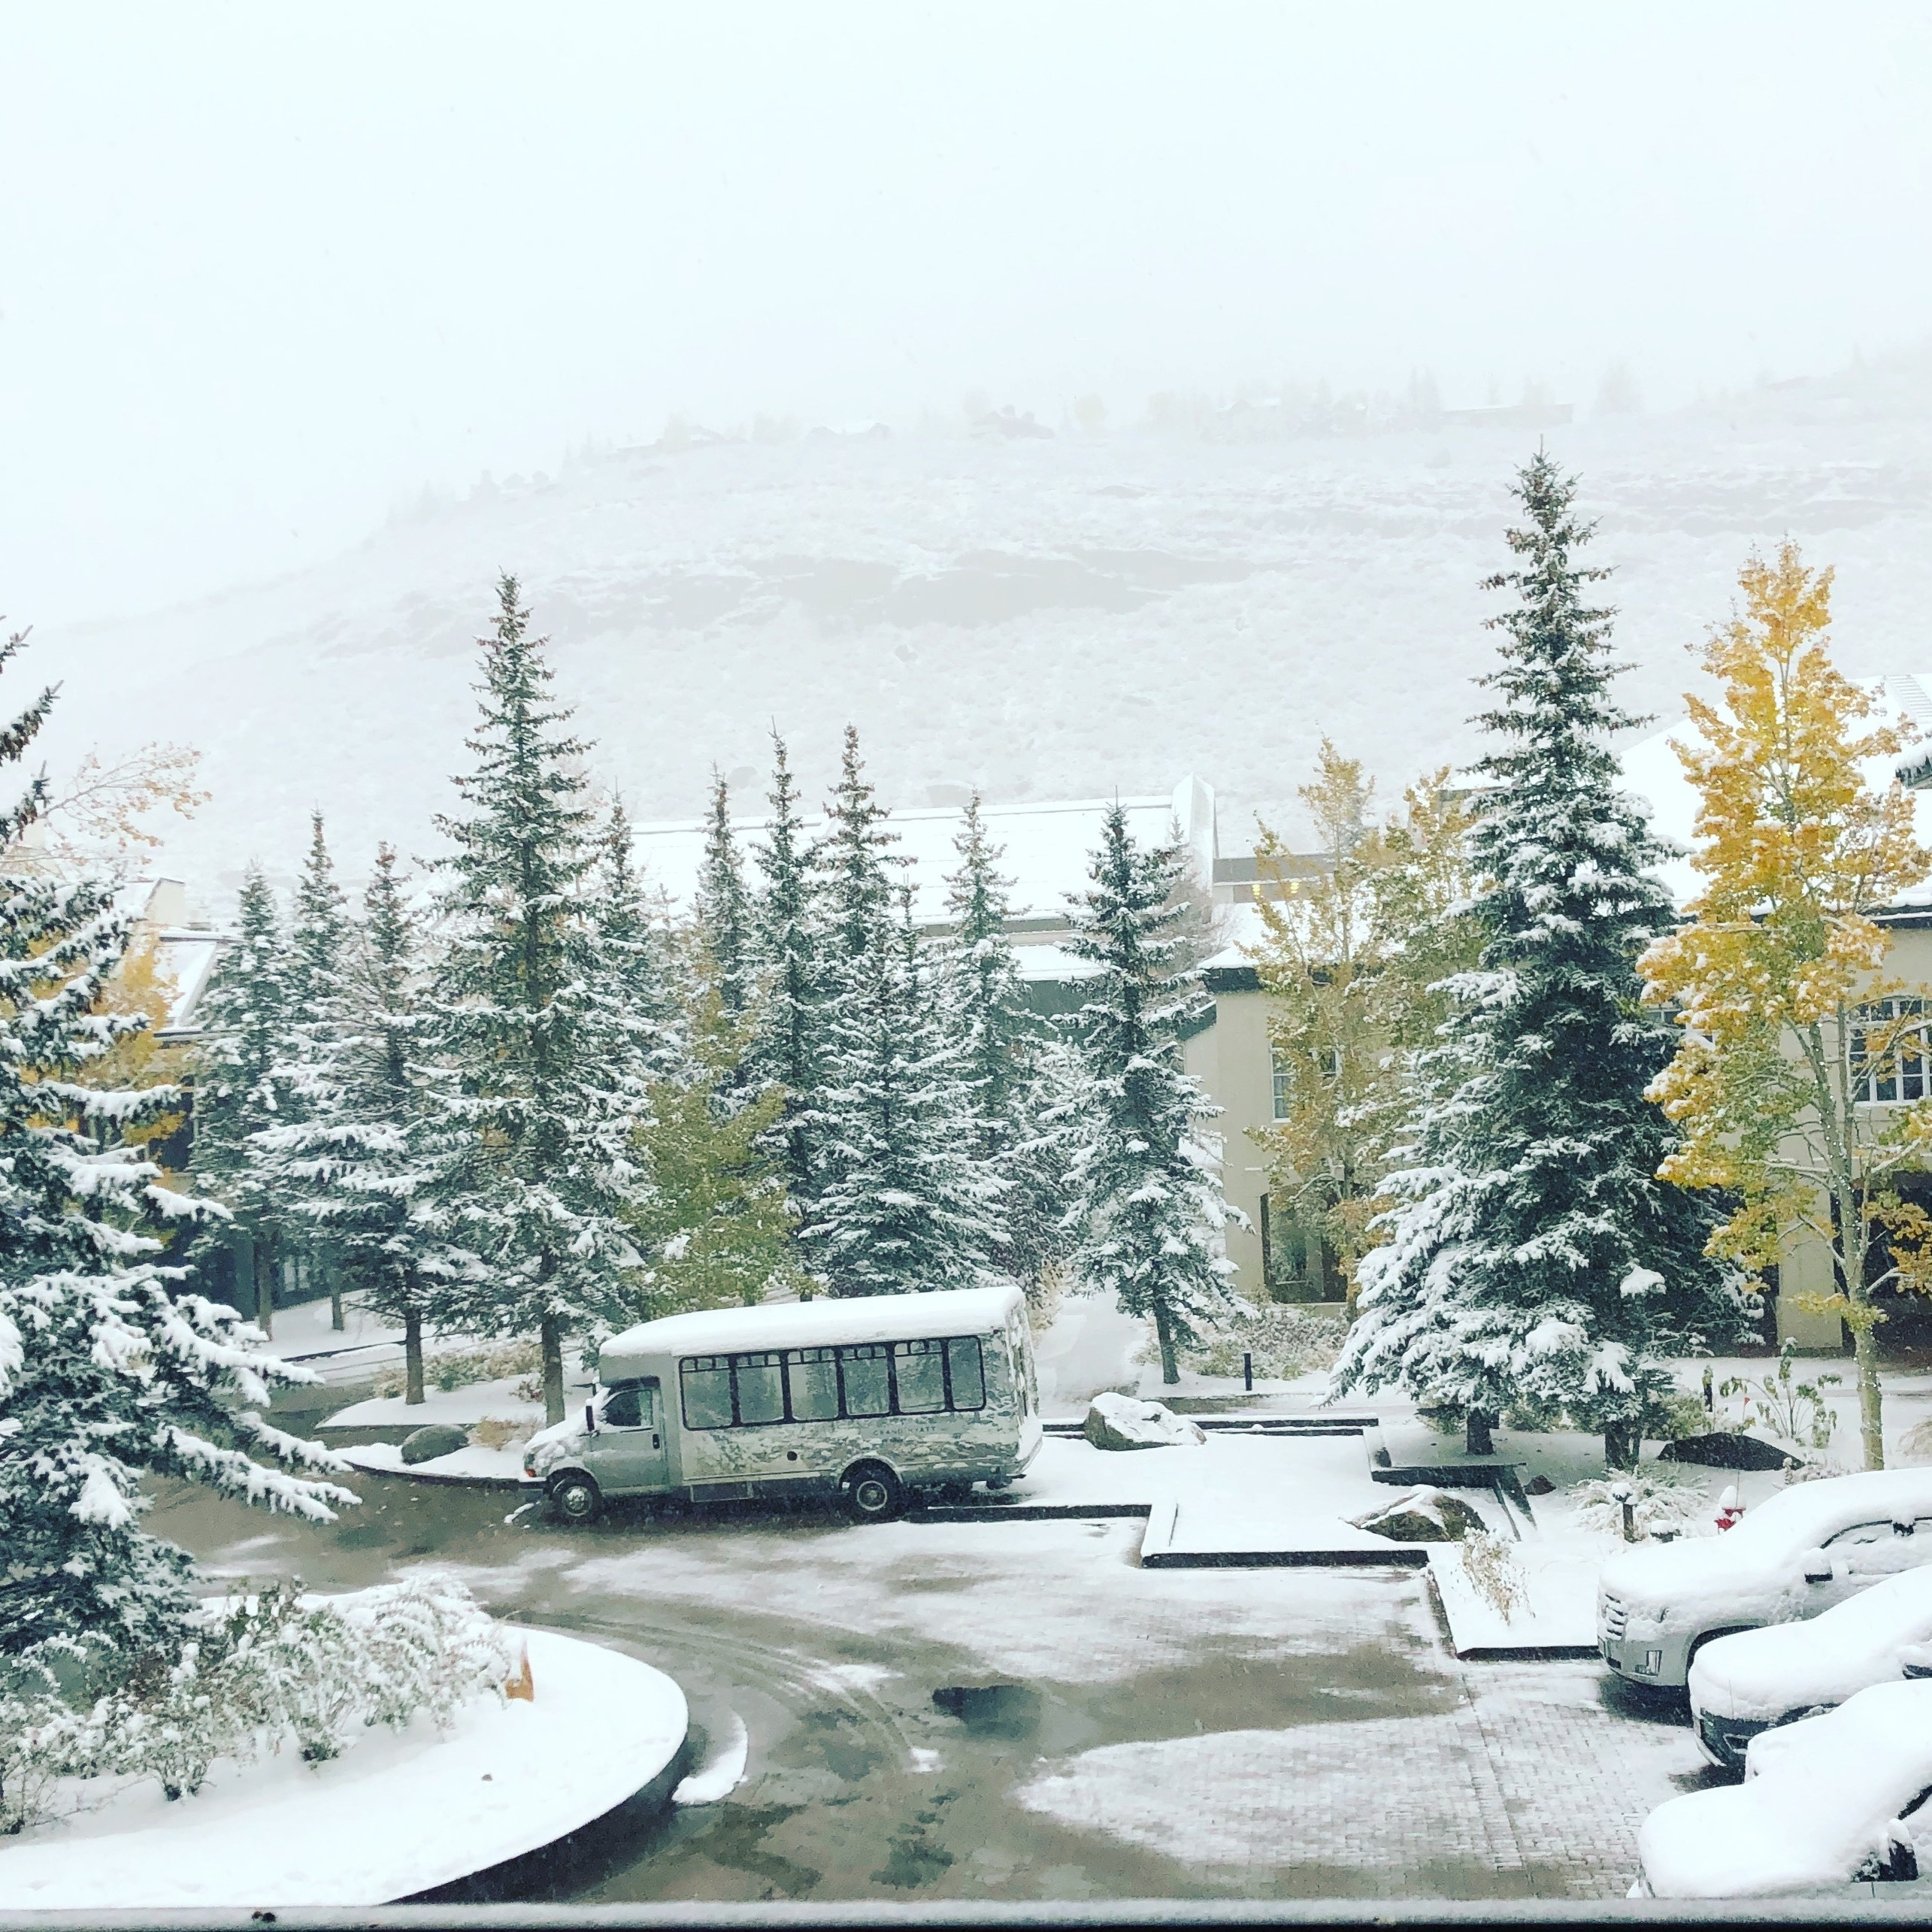 West Vail, Vail, Colorado, United States of America